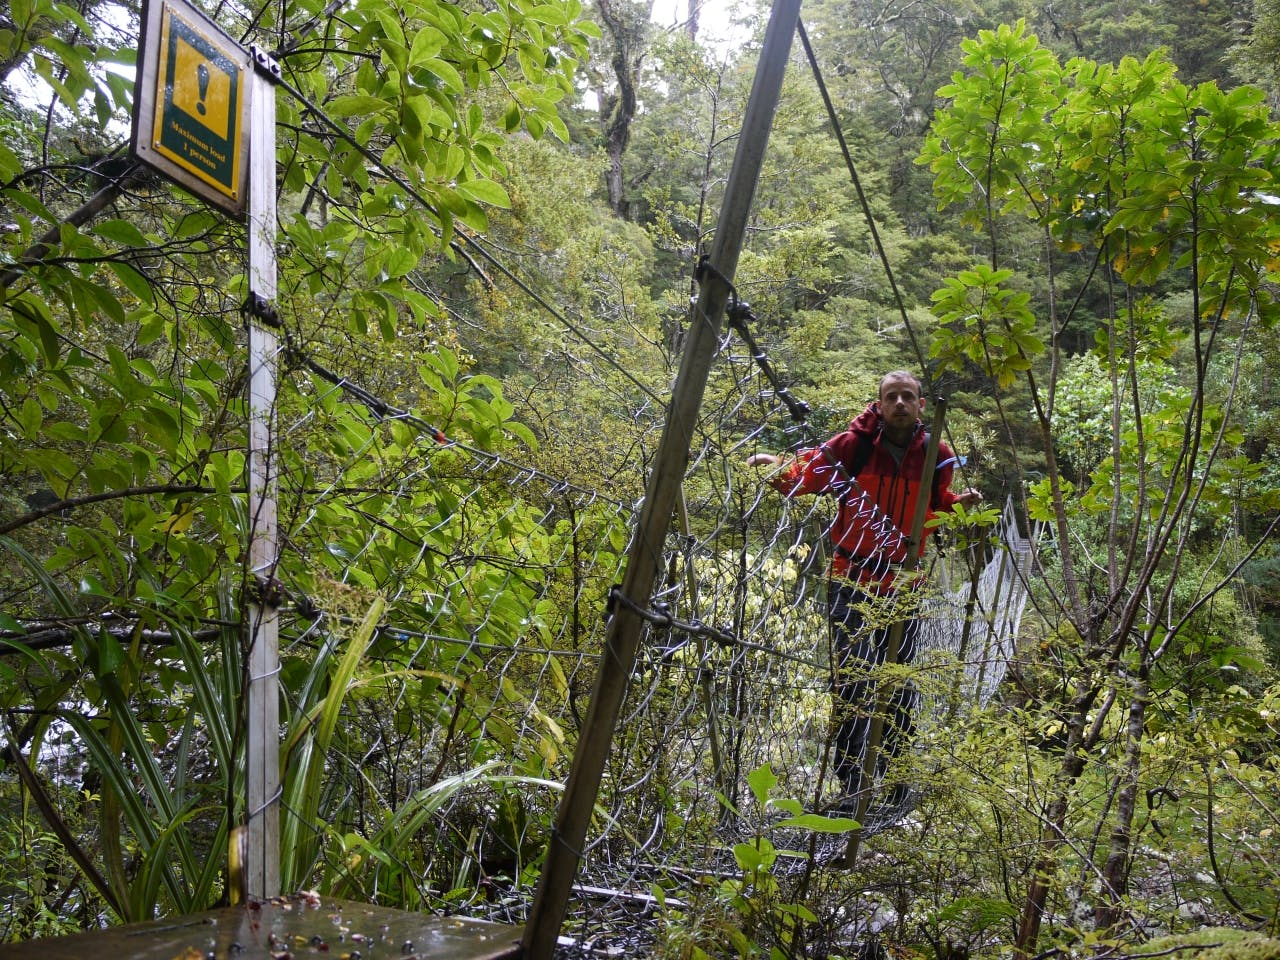 There are four Forest Service swingbridges on the Catlins River-Wisp Loop